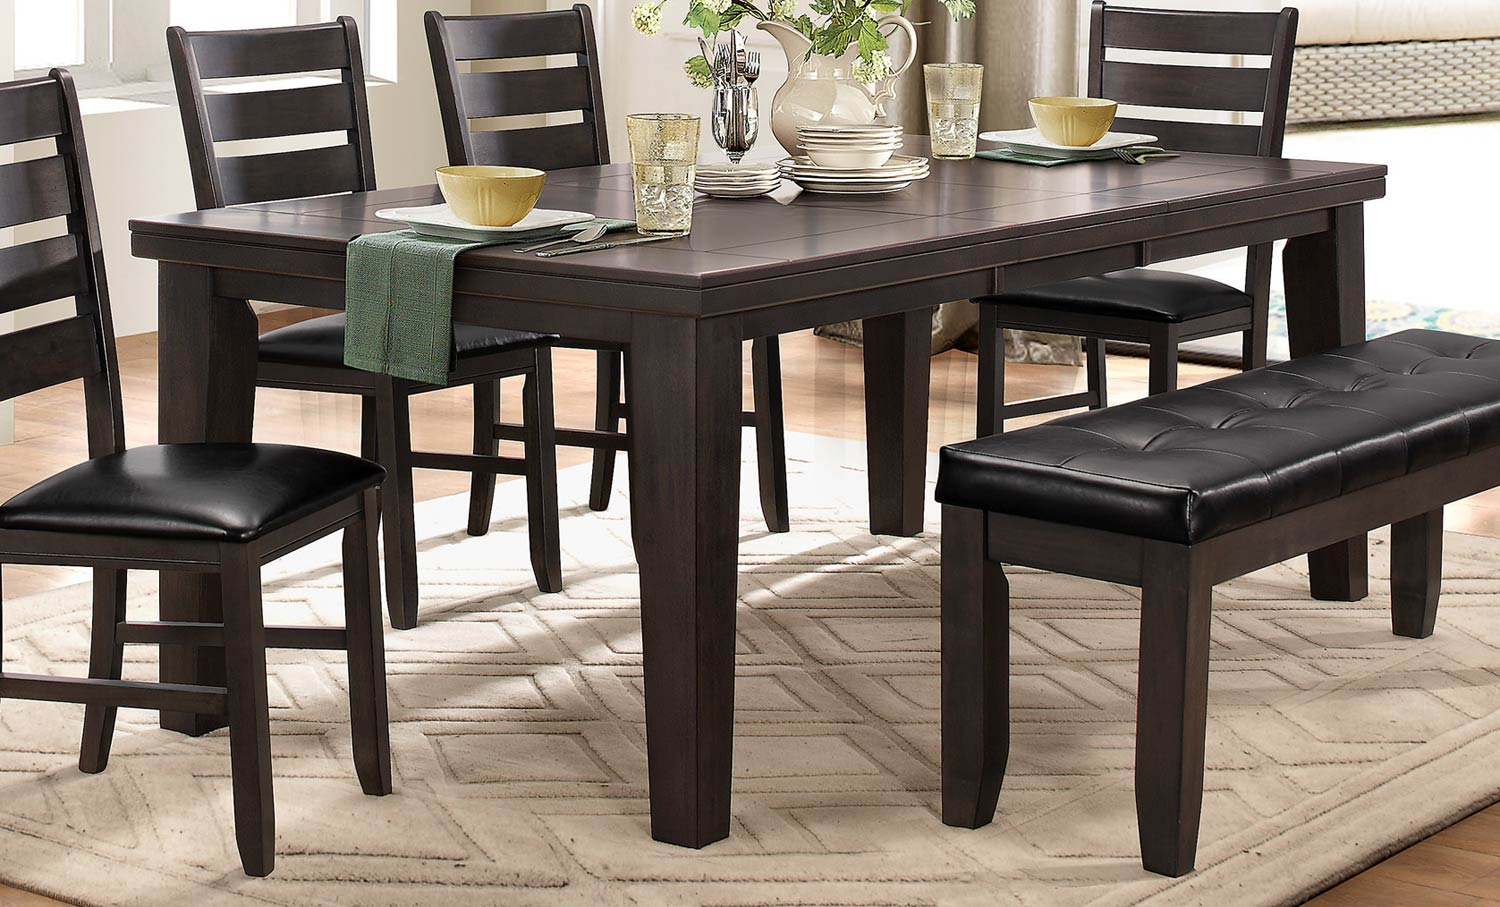 Homelegance Ameillia Dining Table - Grey/Brown